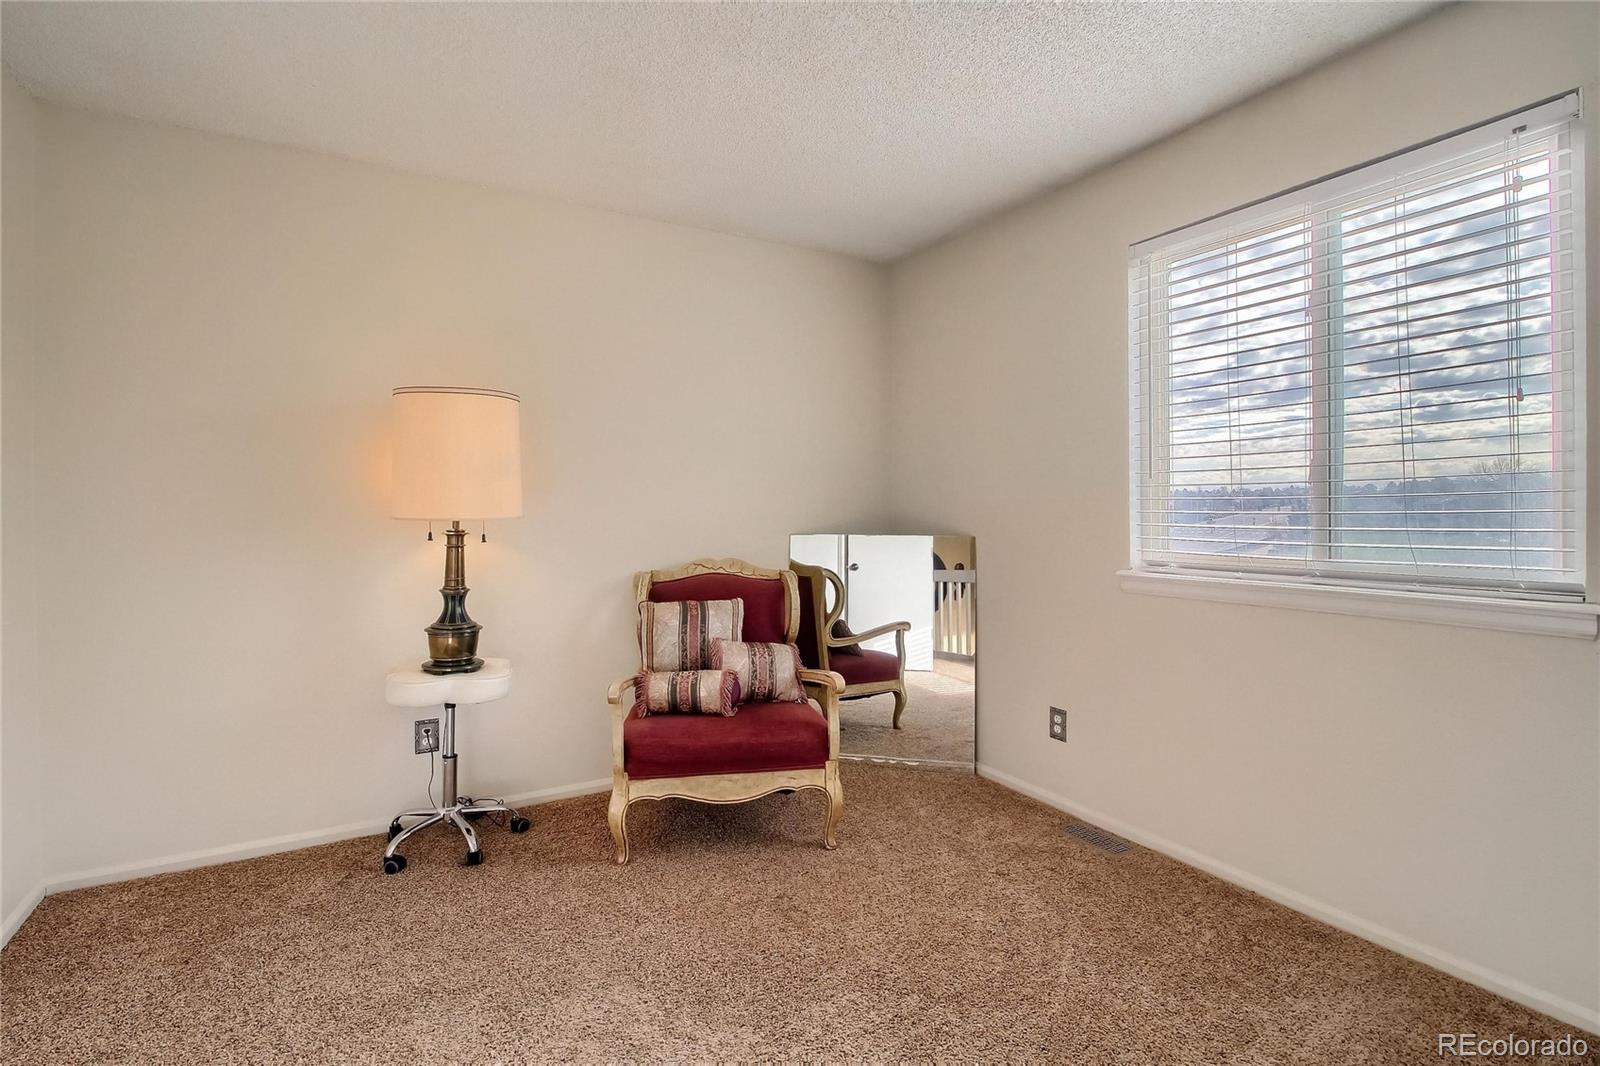 MLS# 3641043 - 18 - 3510 S Telluride Circle #C, Aurora, CO 80013